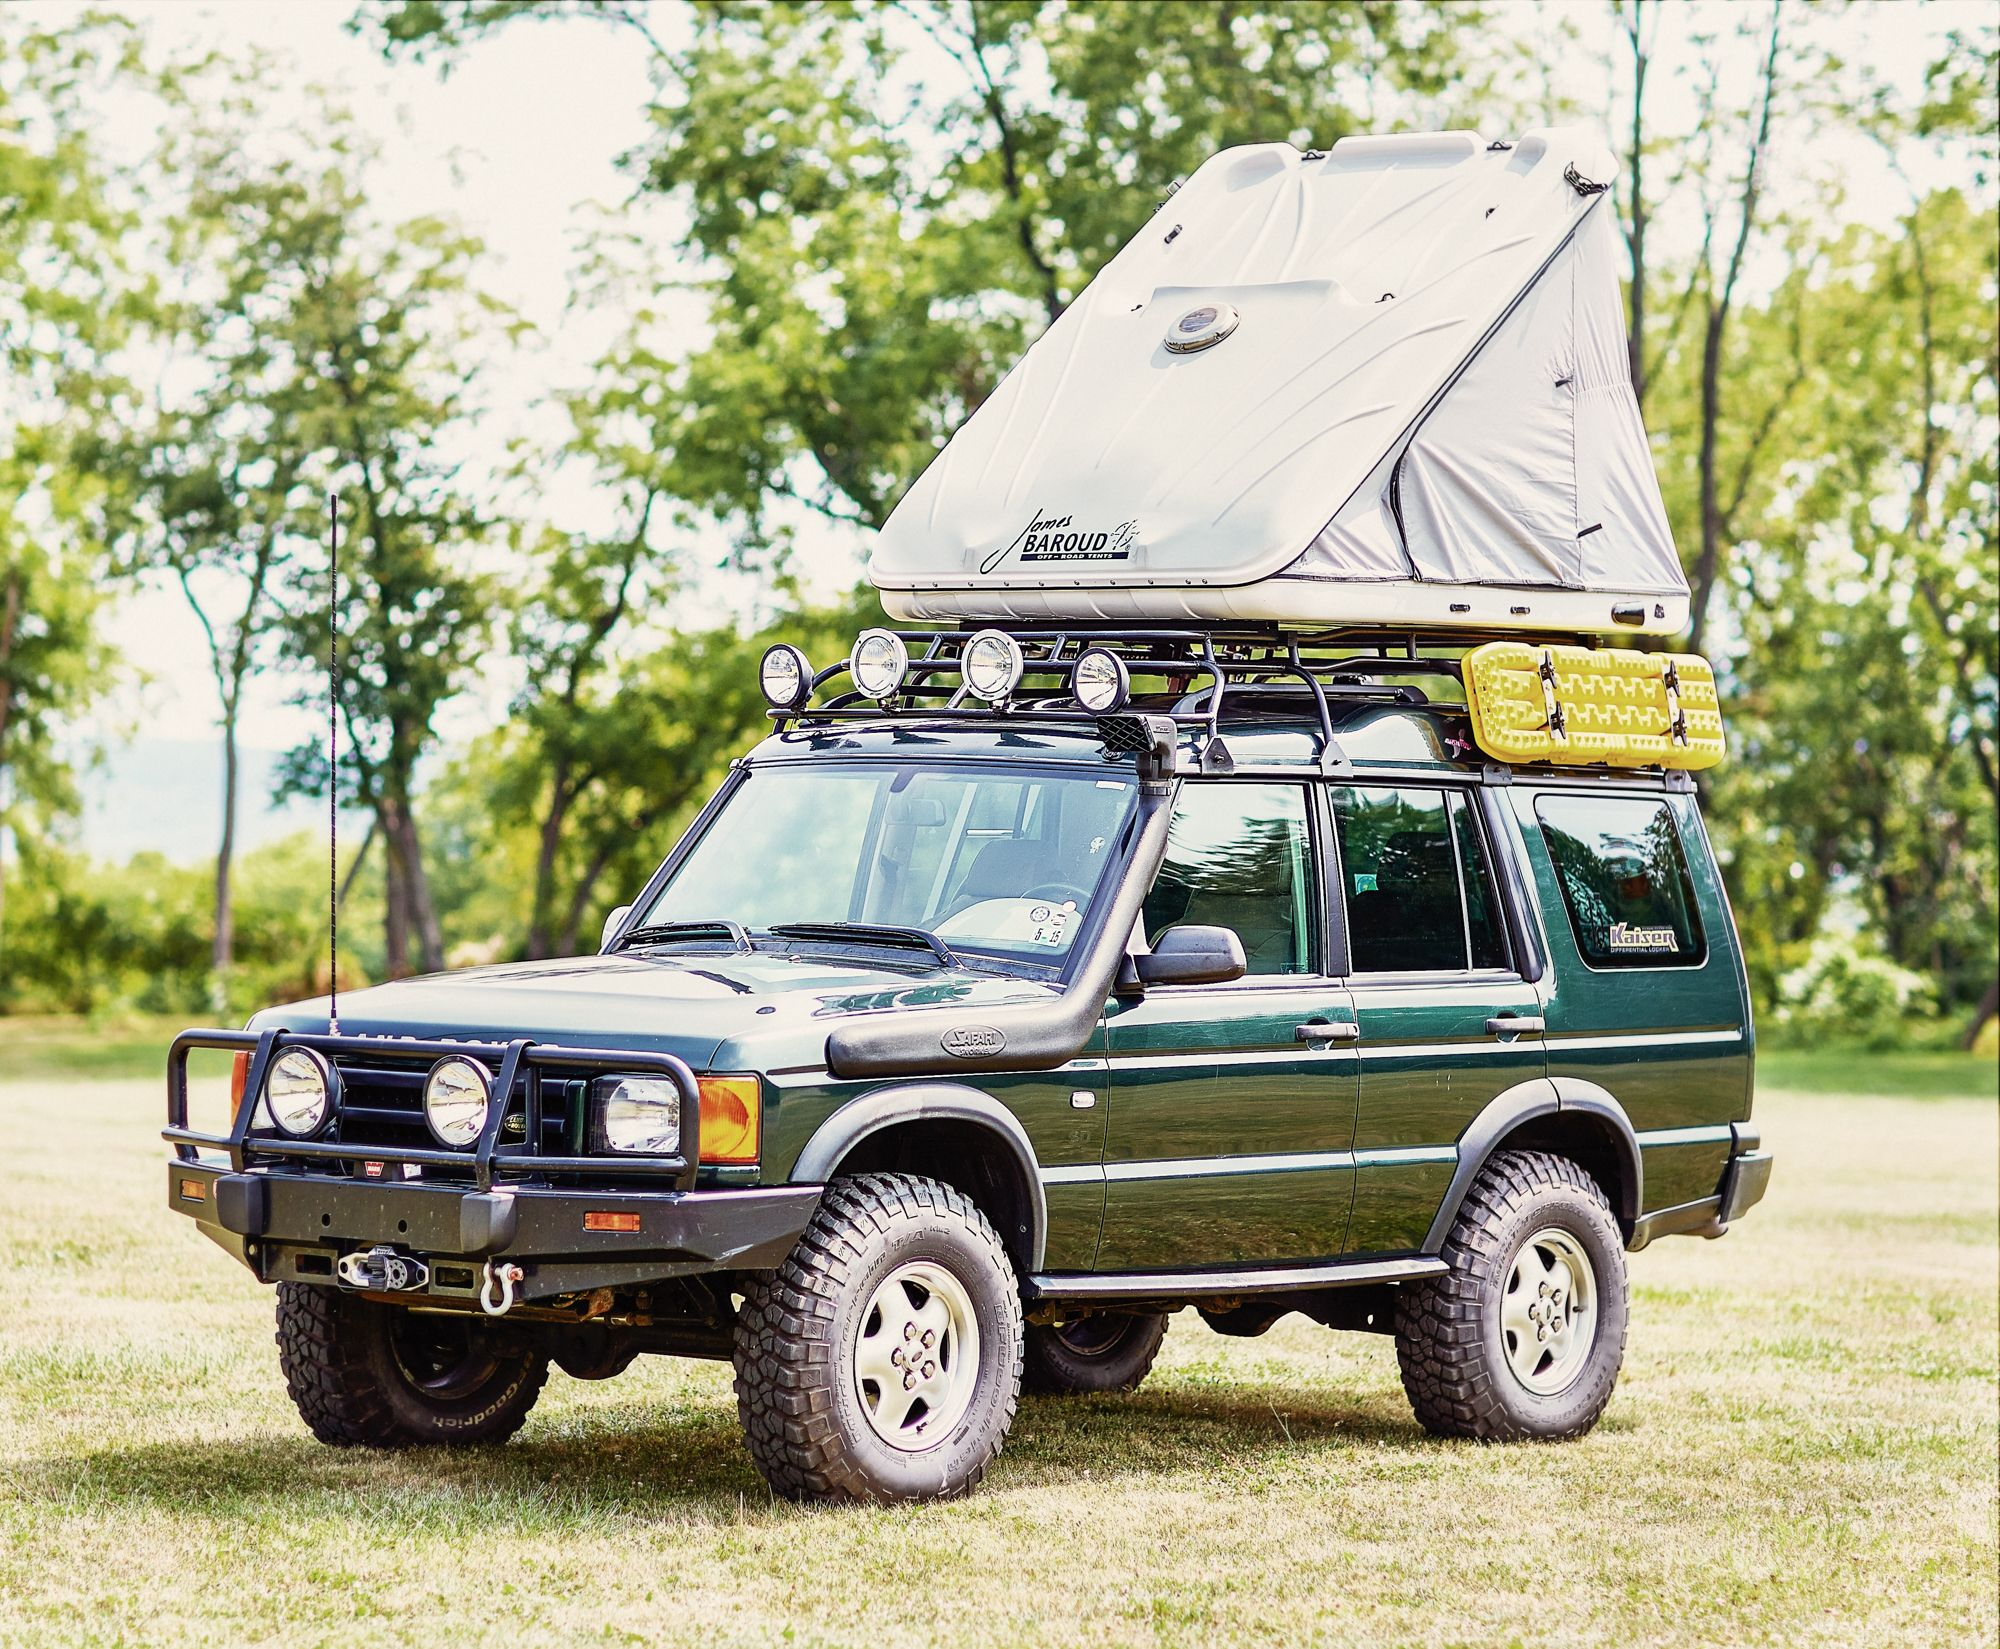 The James Baroud Discovery Extreme Evolution Roof Top Tent